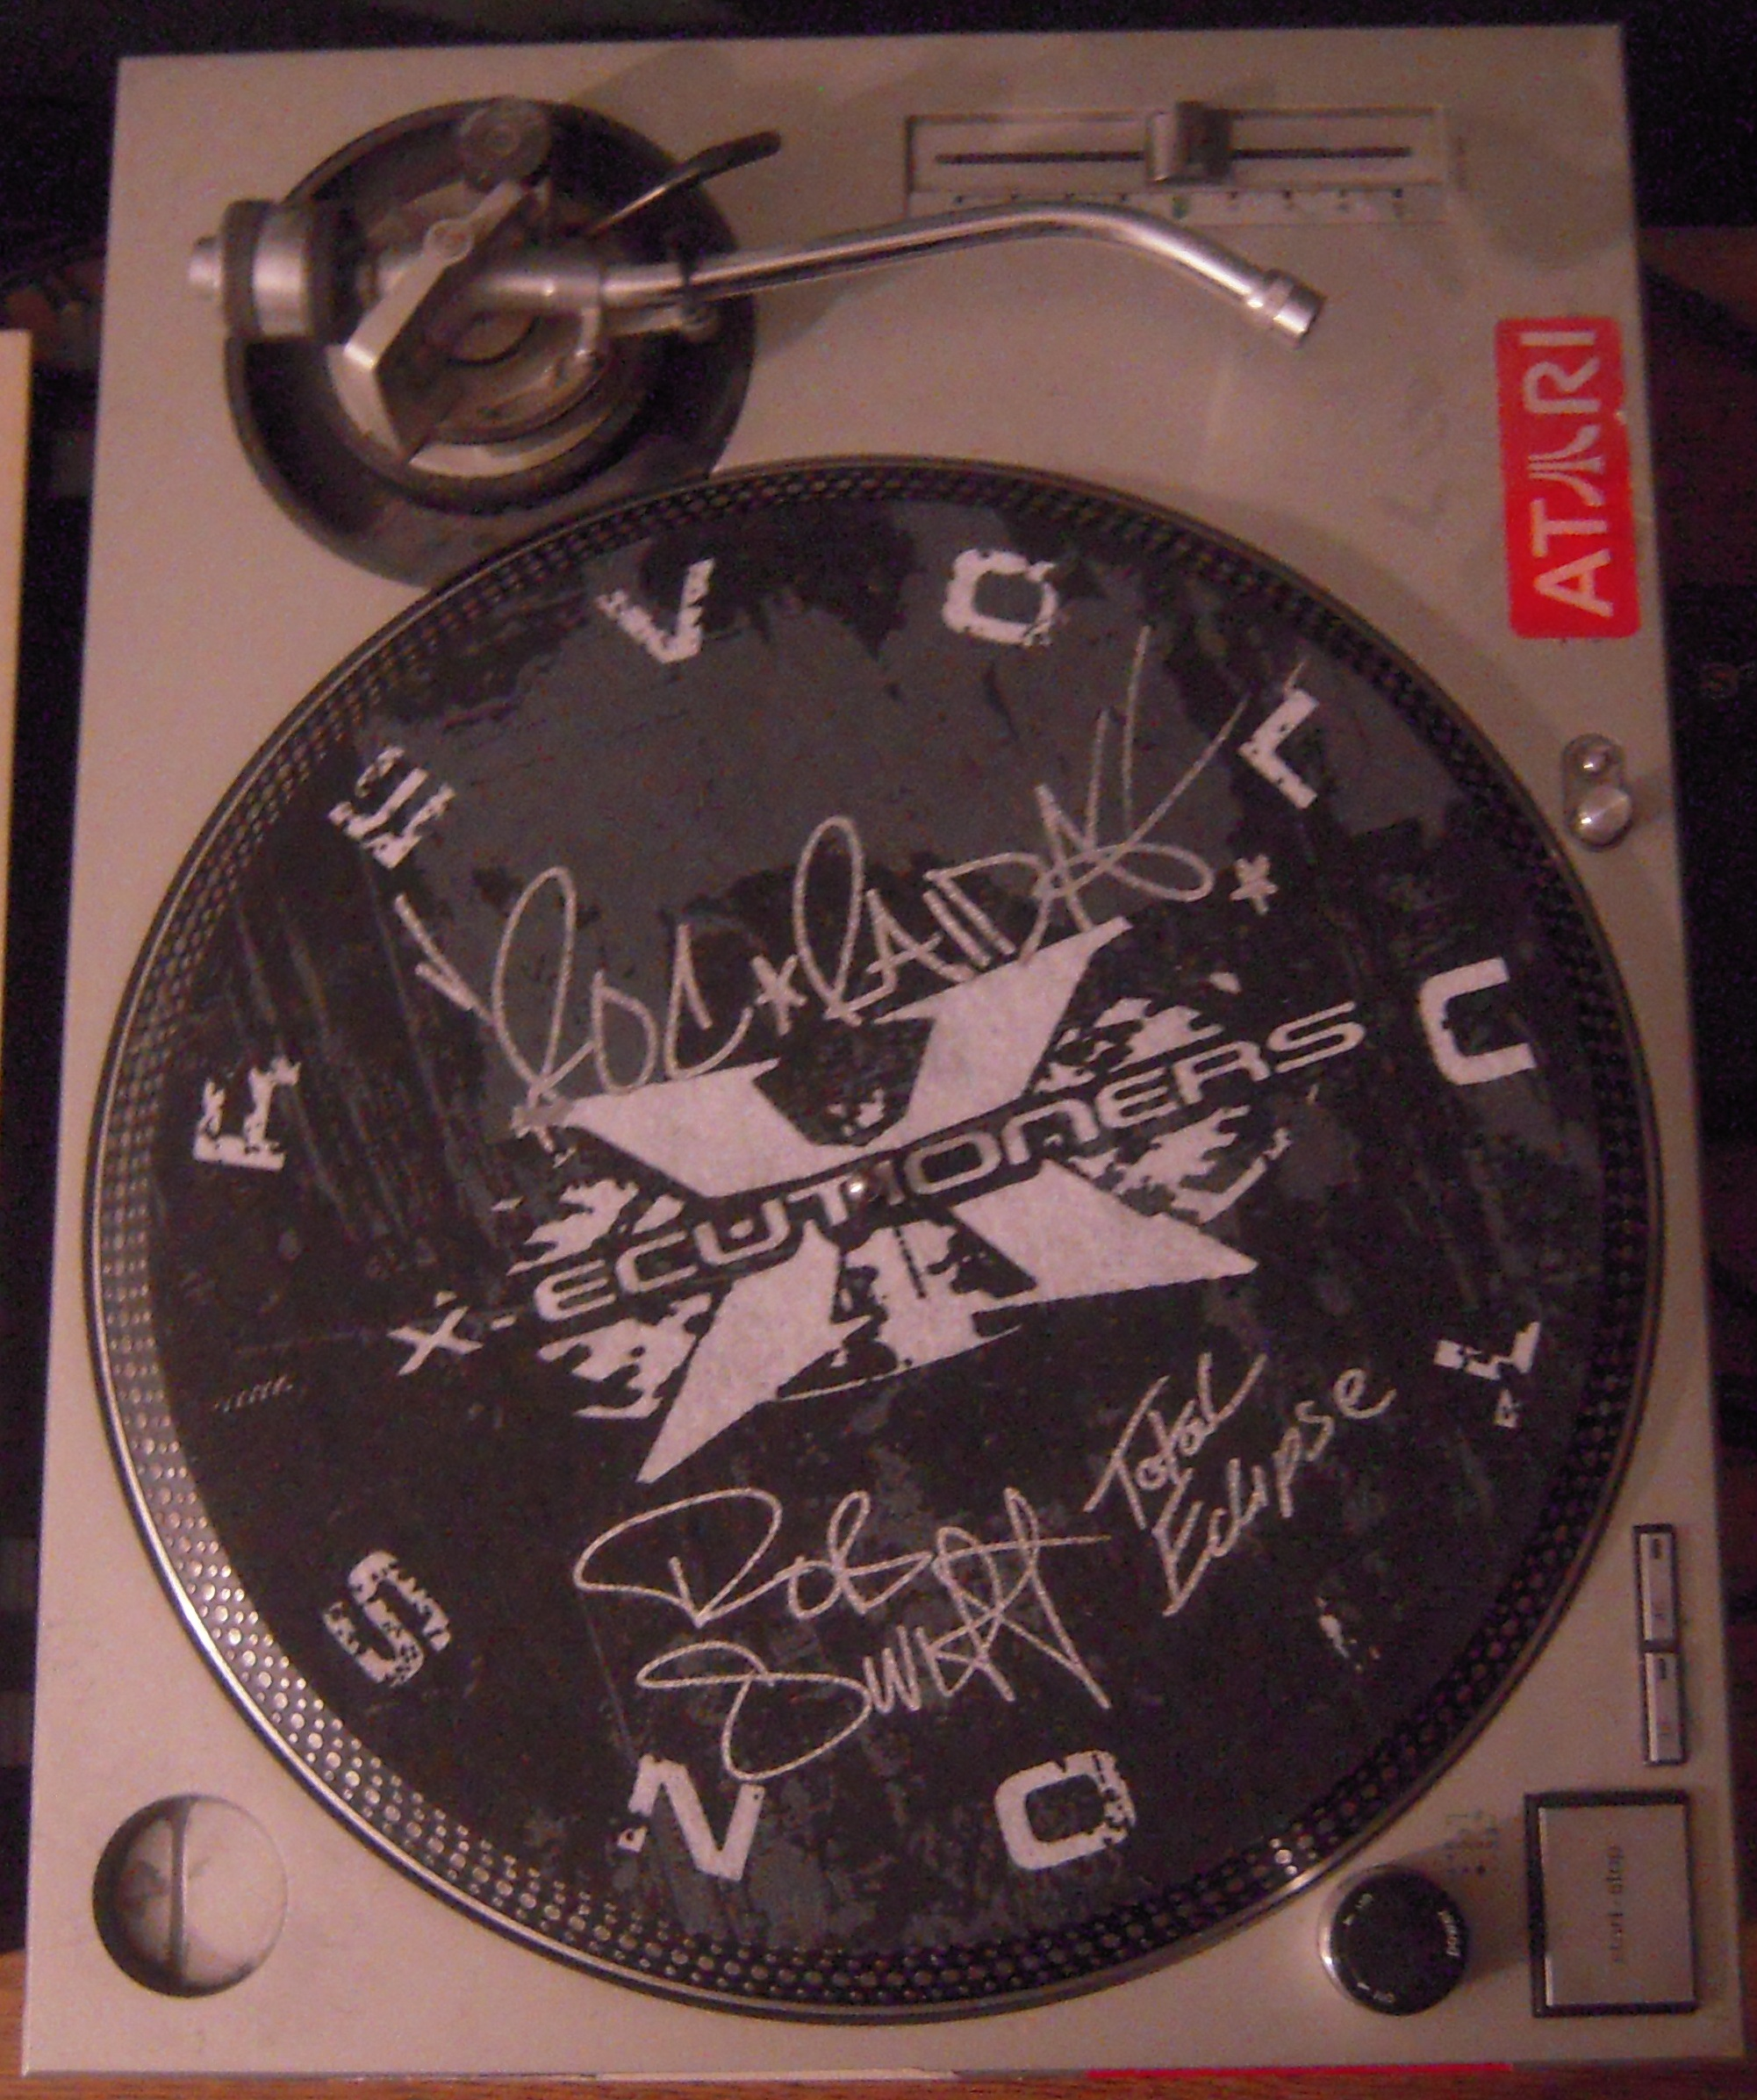 The X-Ecutioners Autographed Slipmat (R.I.P. Roc Raida) 